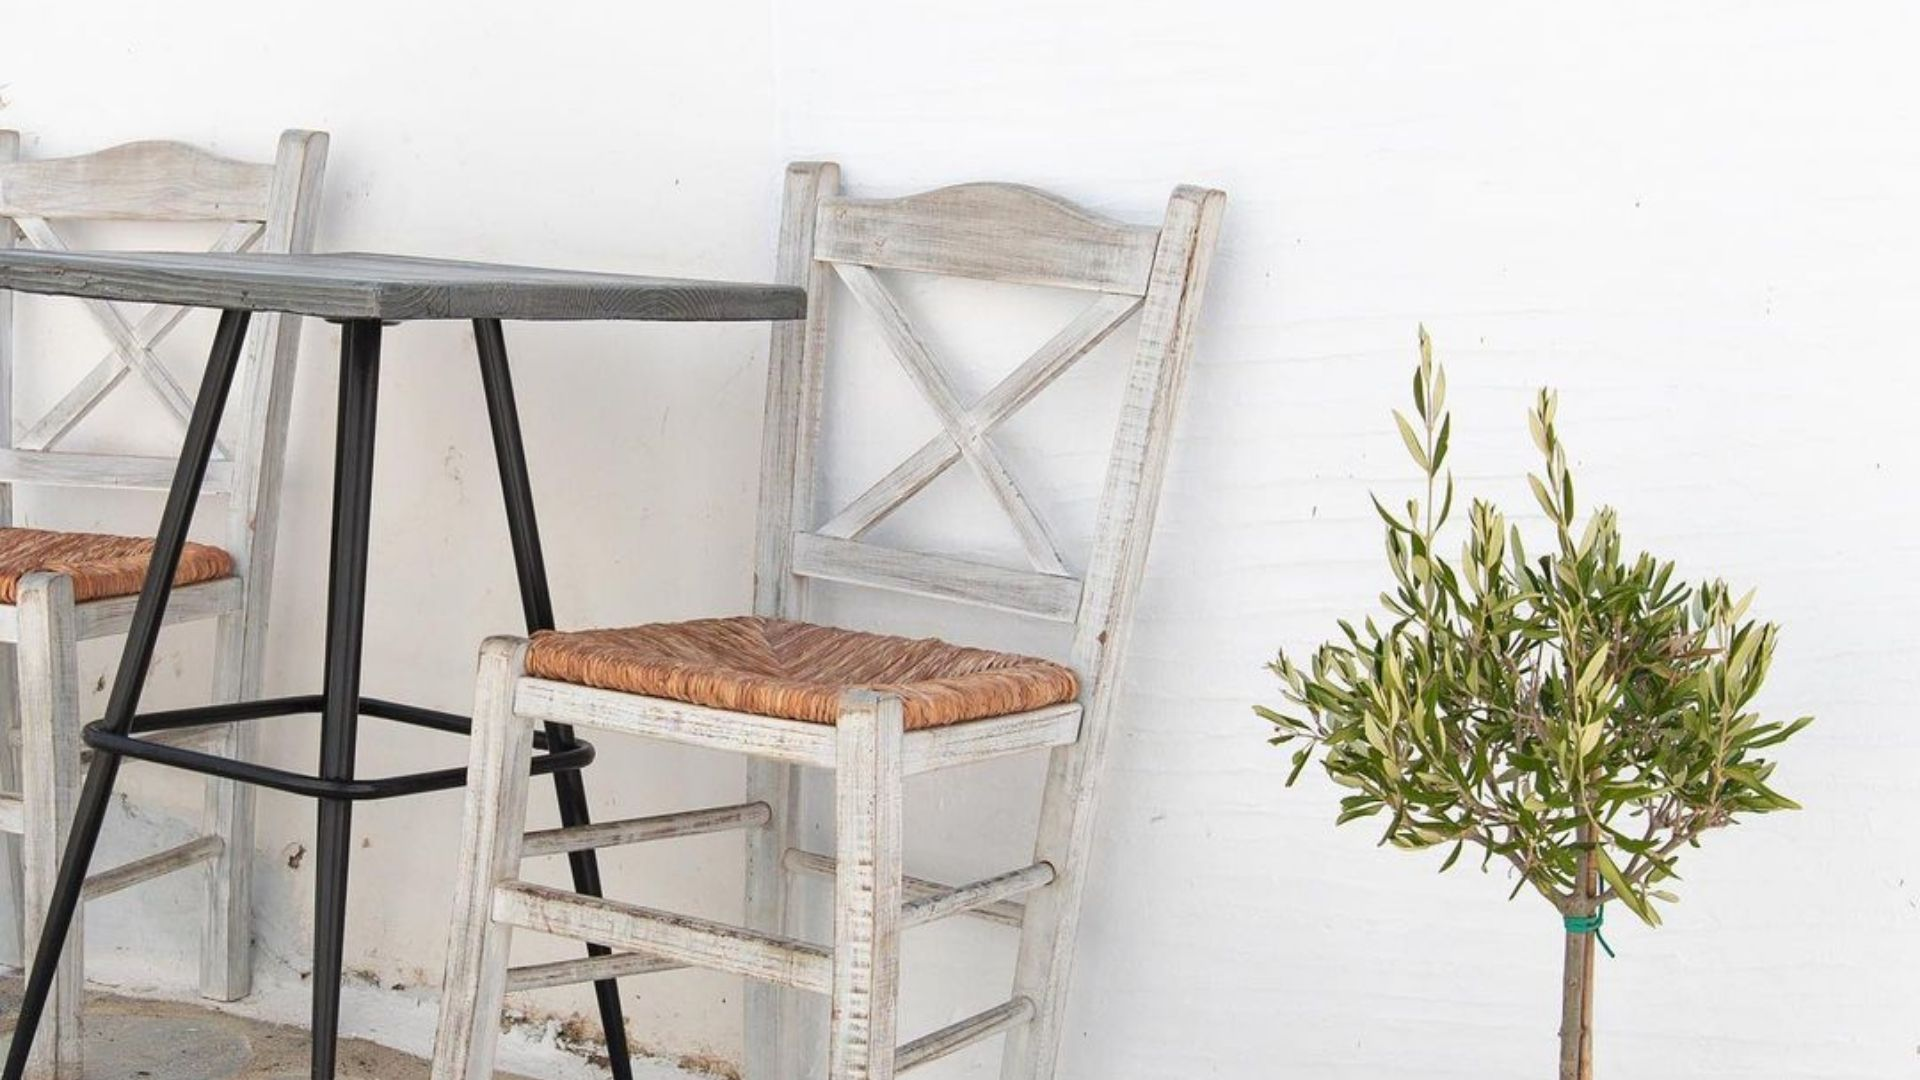 Cuta table with chair in Tinos